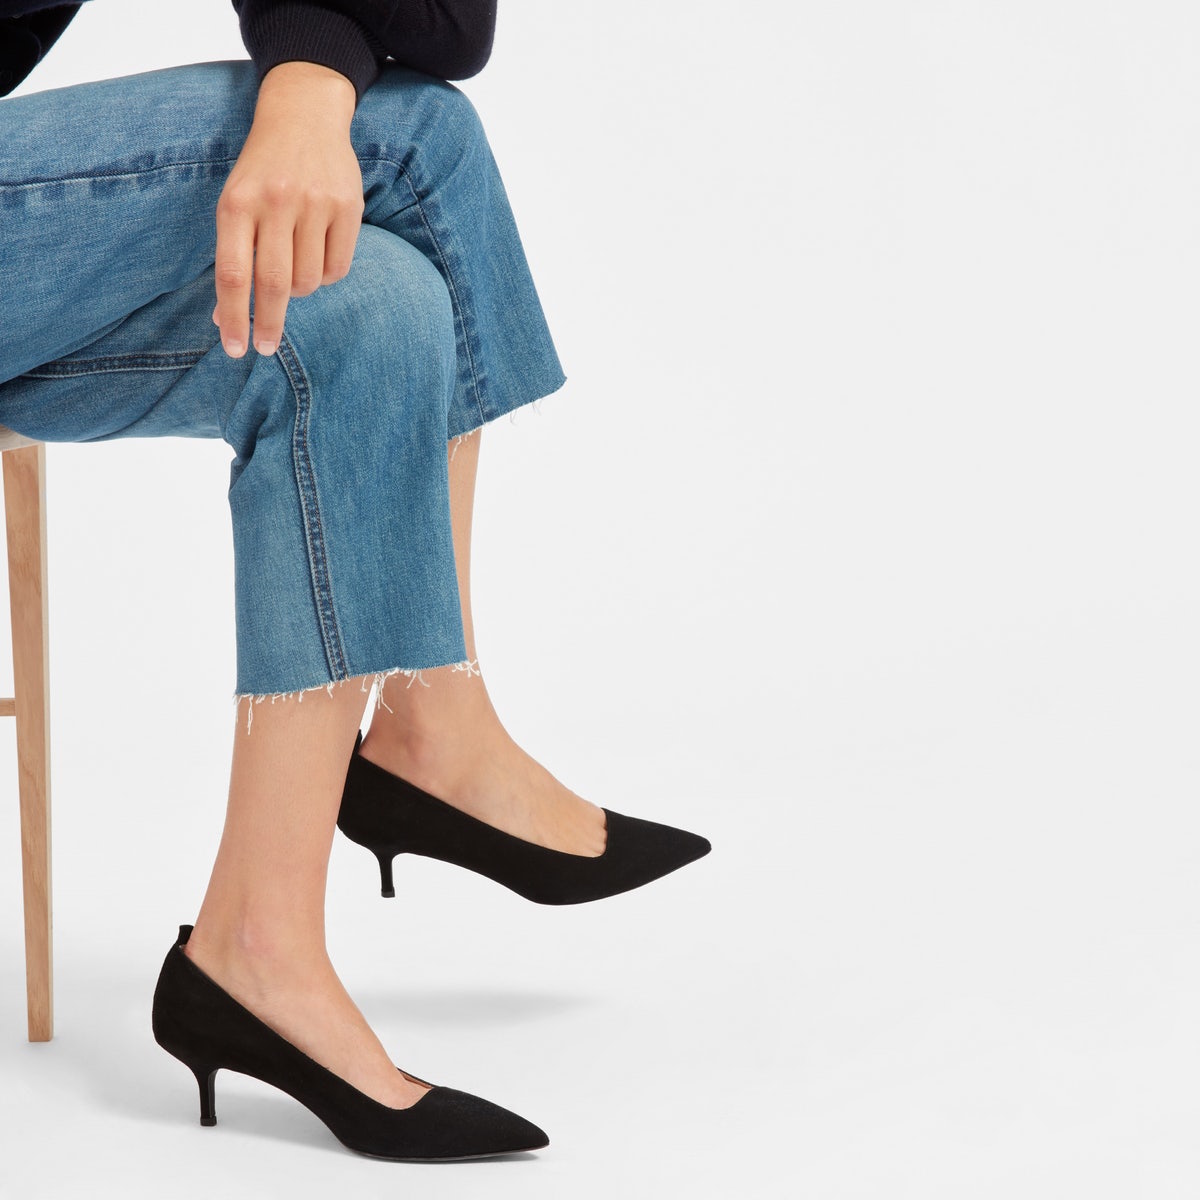 Everlane Editor Heel Review